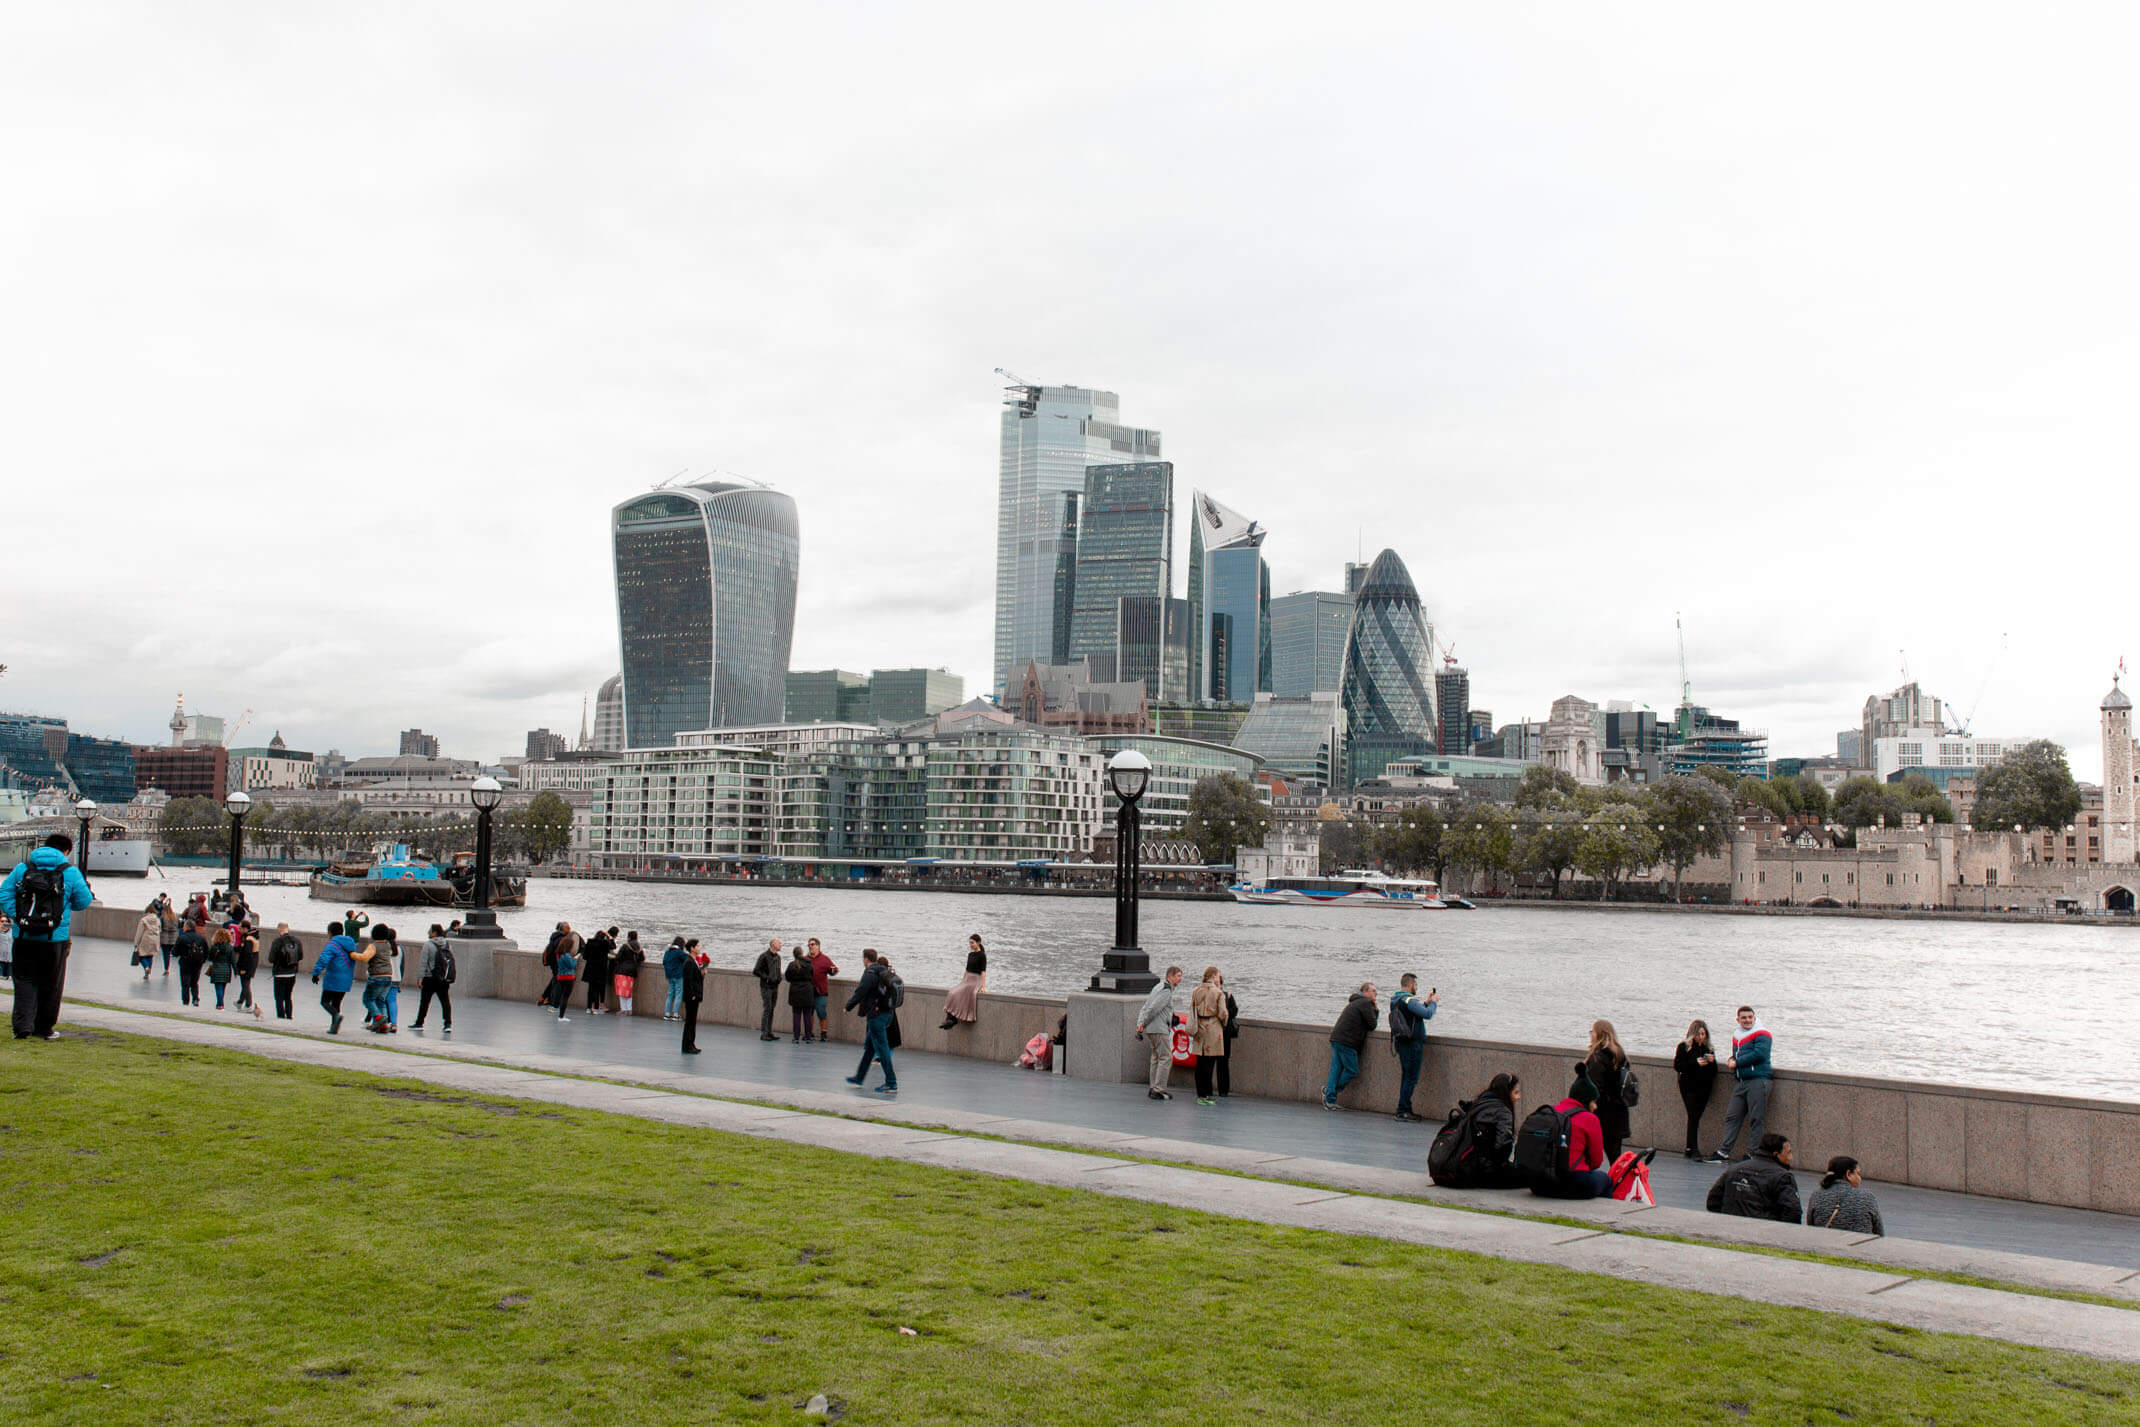 A complete guide to exploring London during Winter